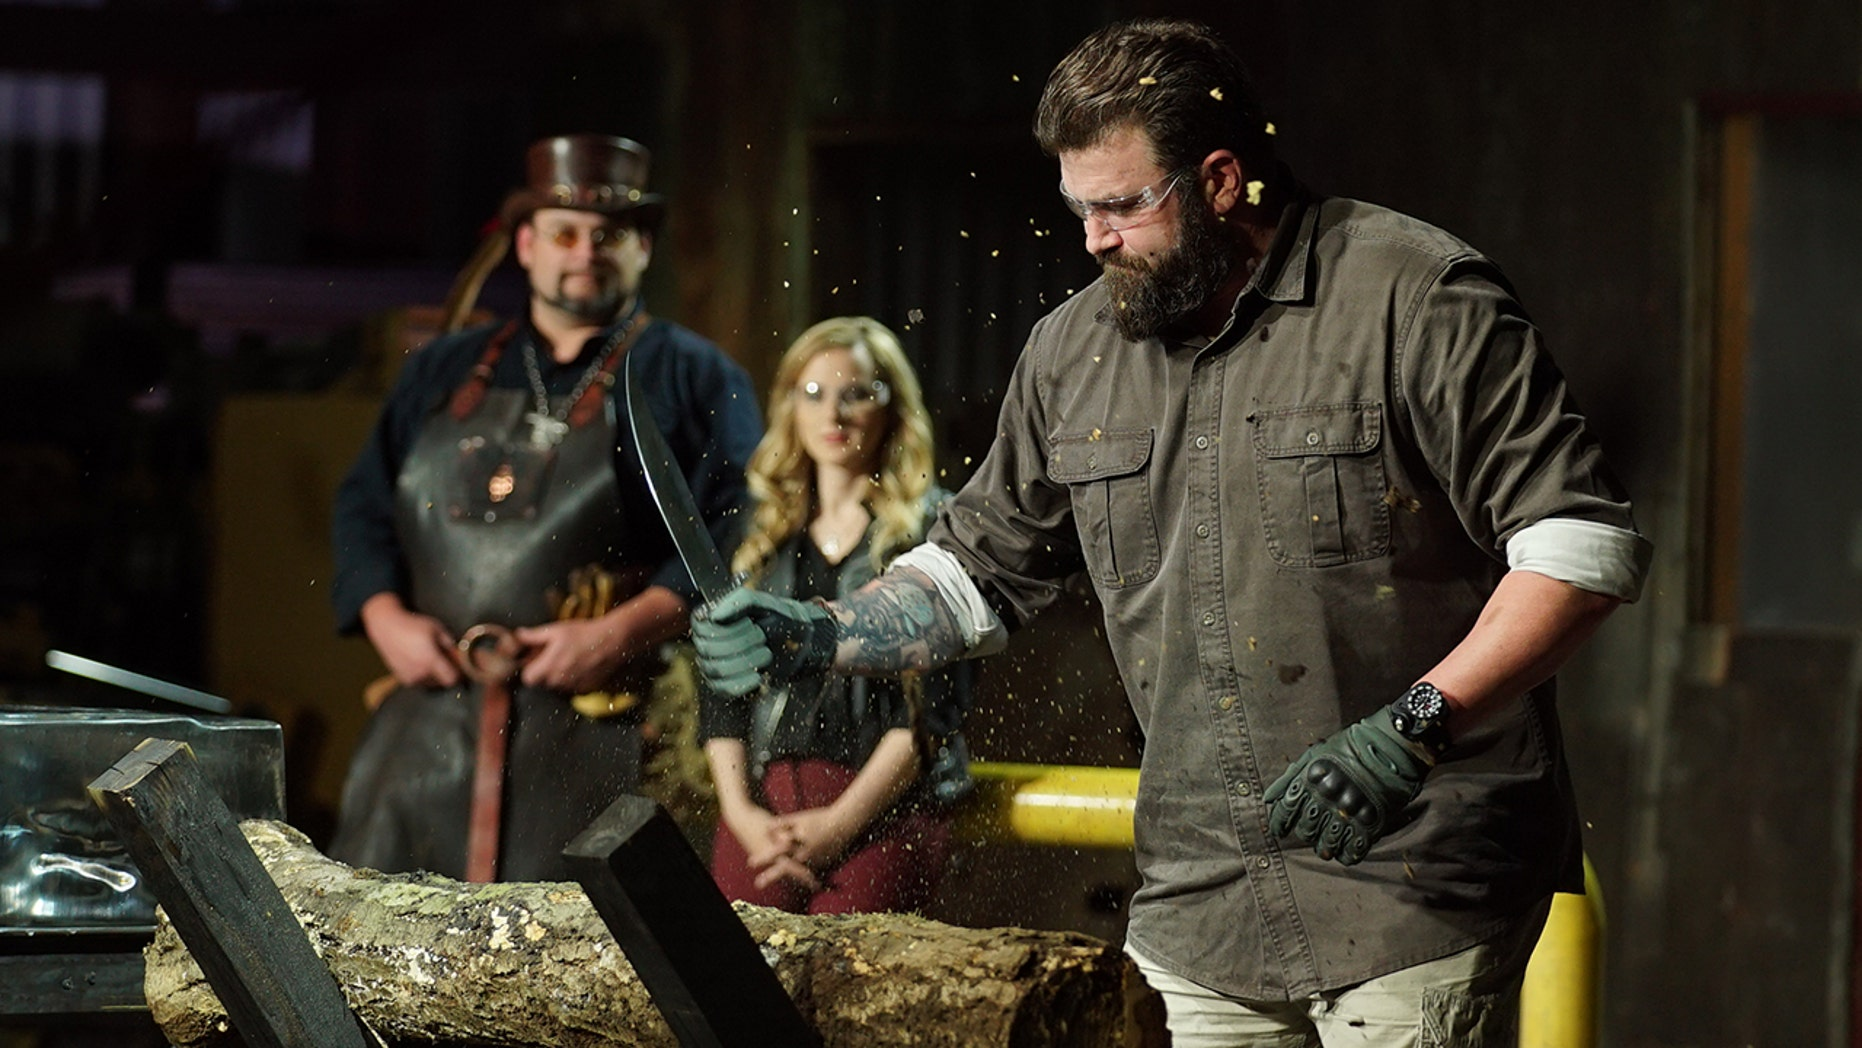 'Master of Arms' judge Zeke chopping at alog with contestants knife. Trent and Ashley in the background.